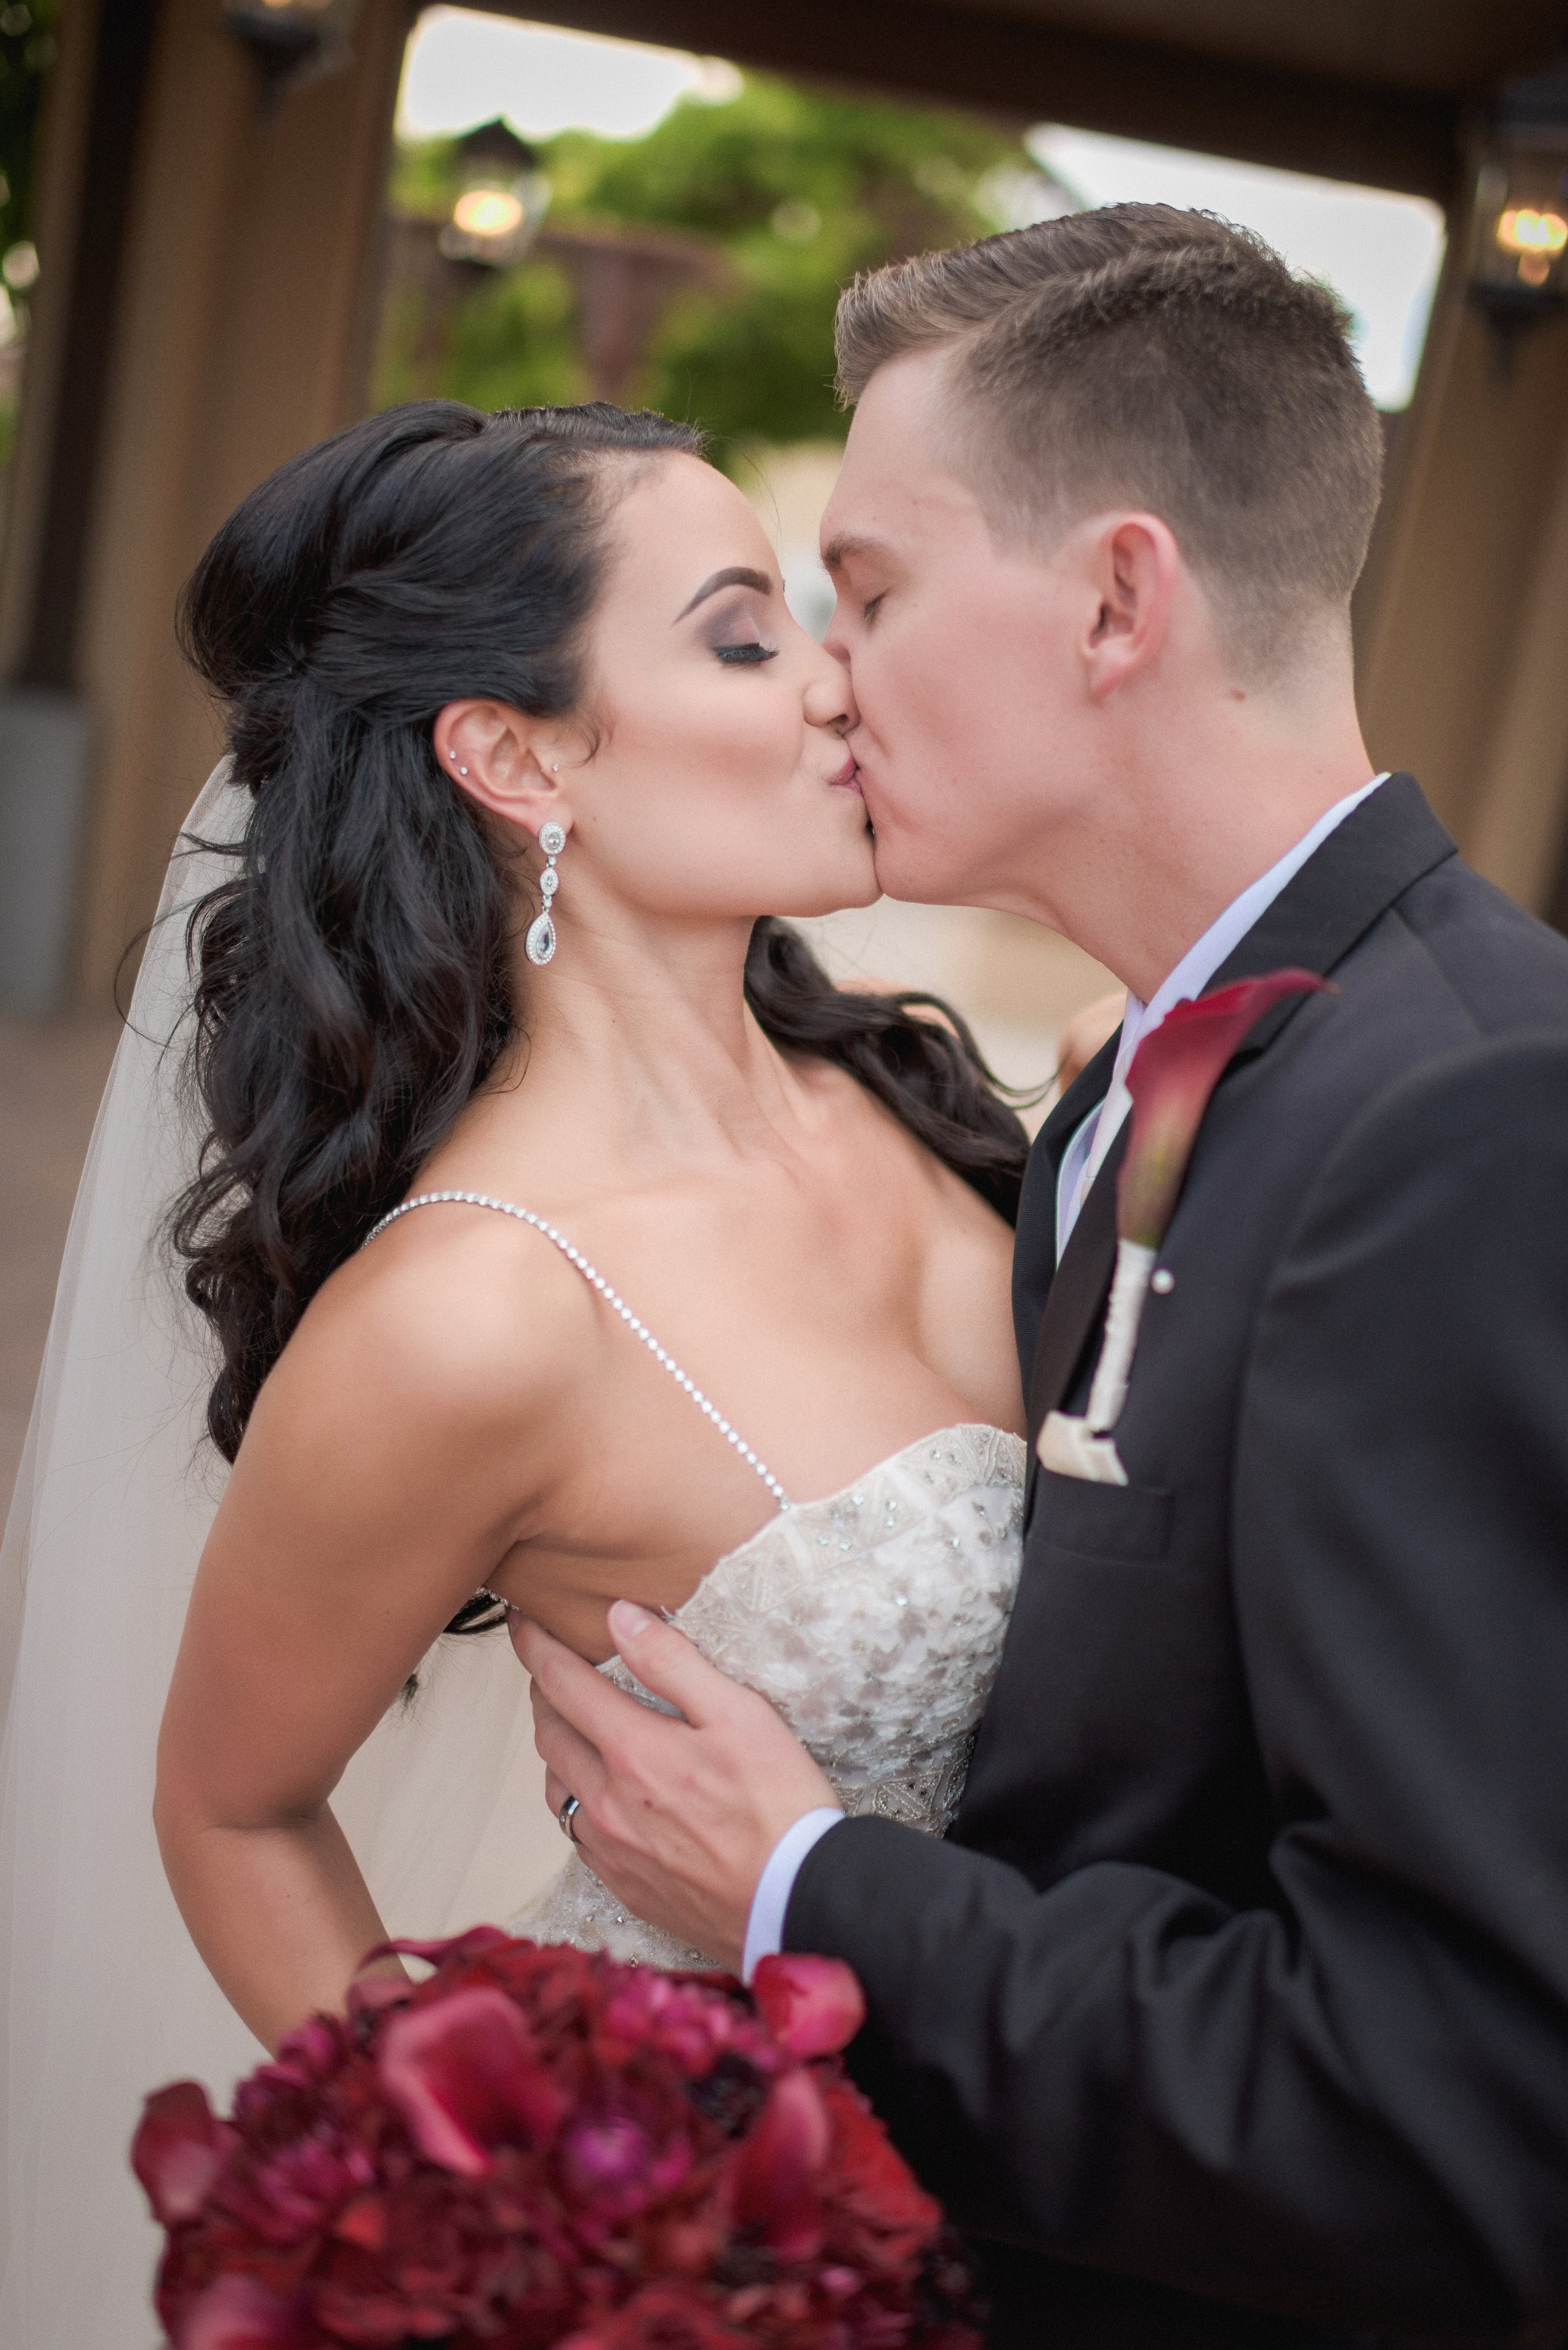 Real Wedding: Carin & Charlie. Location: Hotel Albuquerque. Photographer: Tony Gambino. Coordination: Sealed with a Kiss LLC